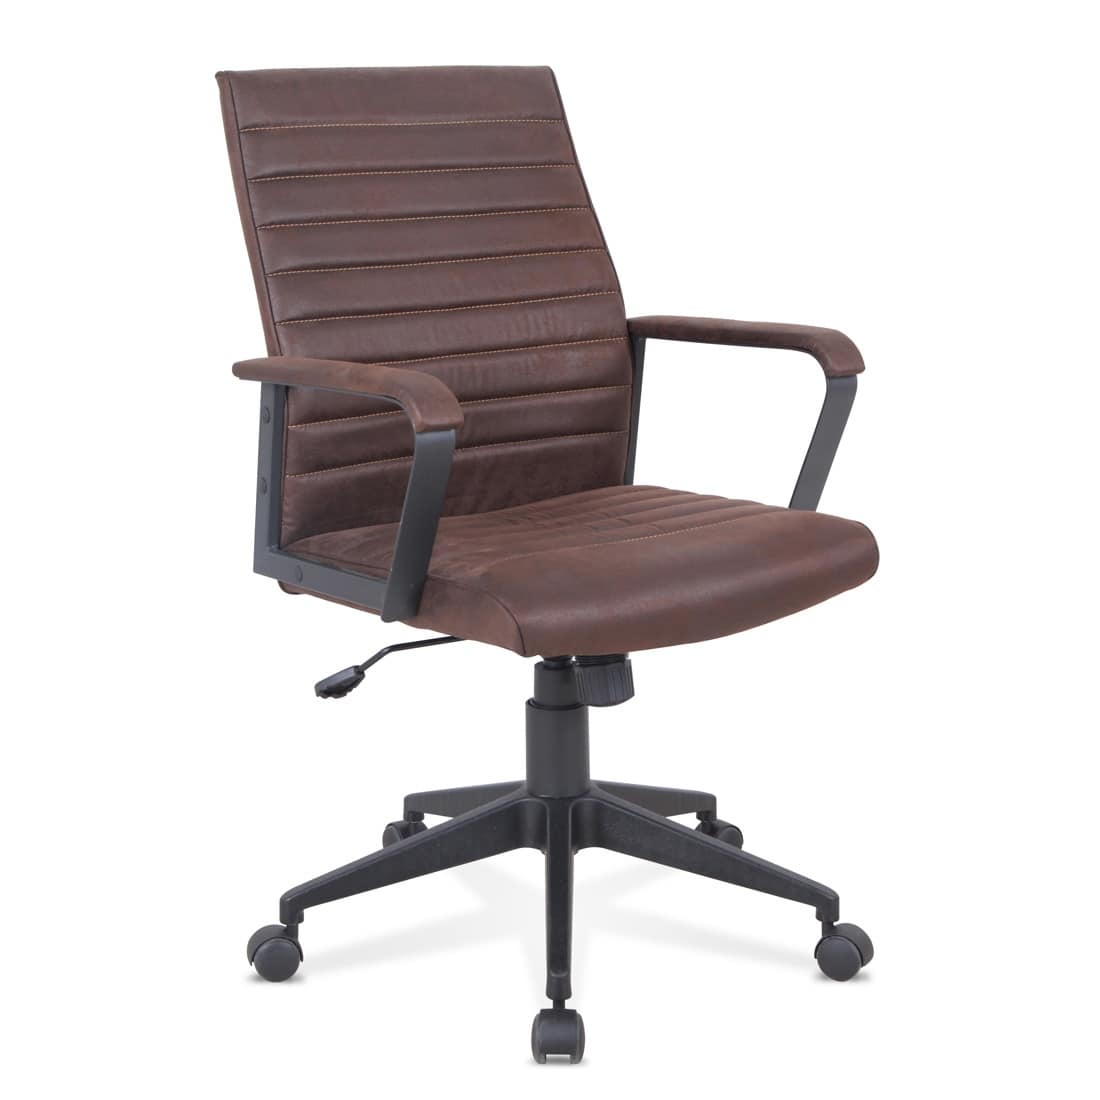 Armchair ergonomic office chair faux leather Linear – SU001LIN, Ergonomic chair with eco-leather, rugged, for office